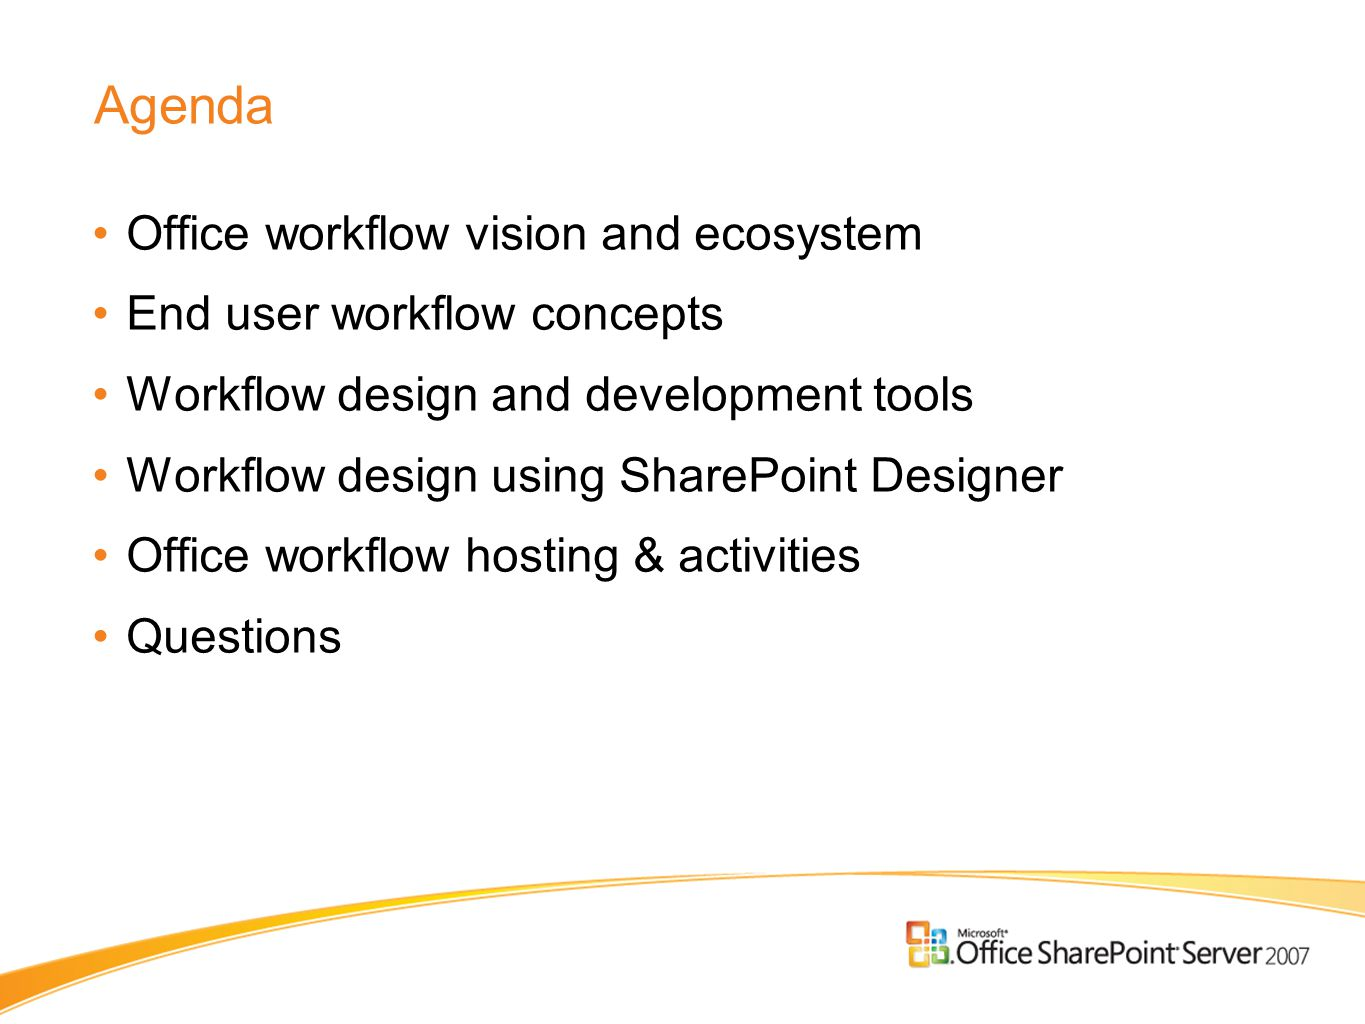 Agenda Office workflow vision and ecosystem End user workflow concepts Workflow design and development tools Workflow design using SharePoint Designer Office workflow hosting & activities Questions